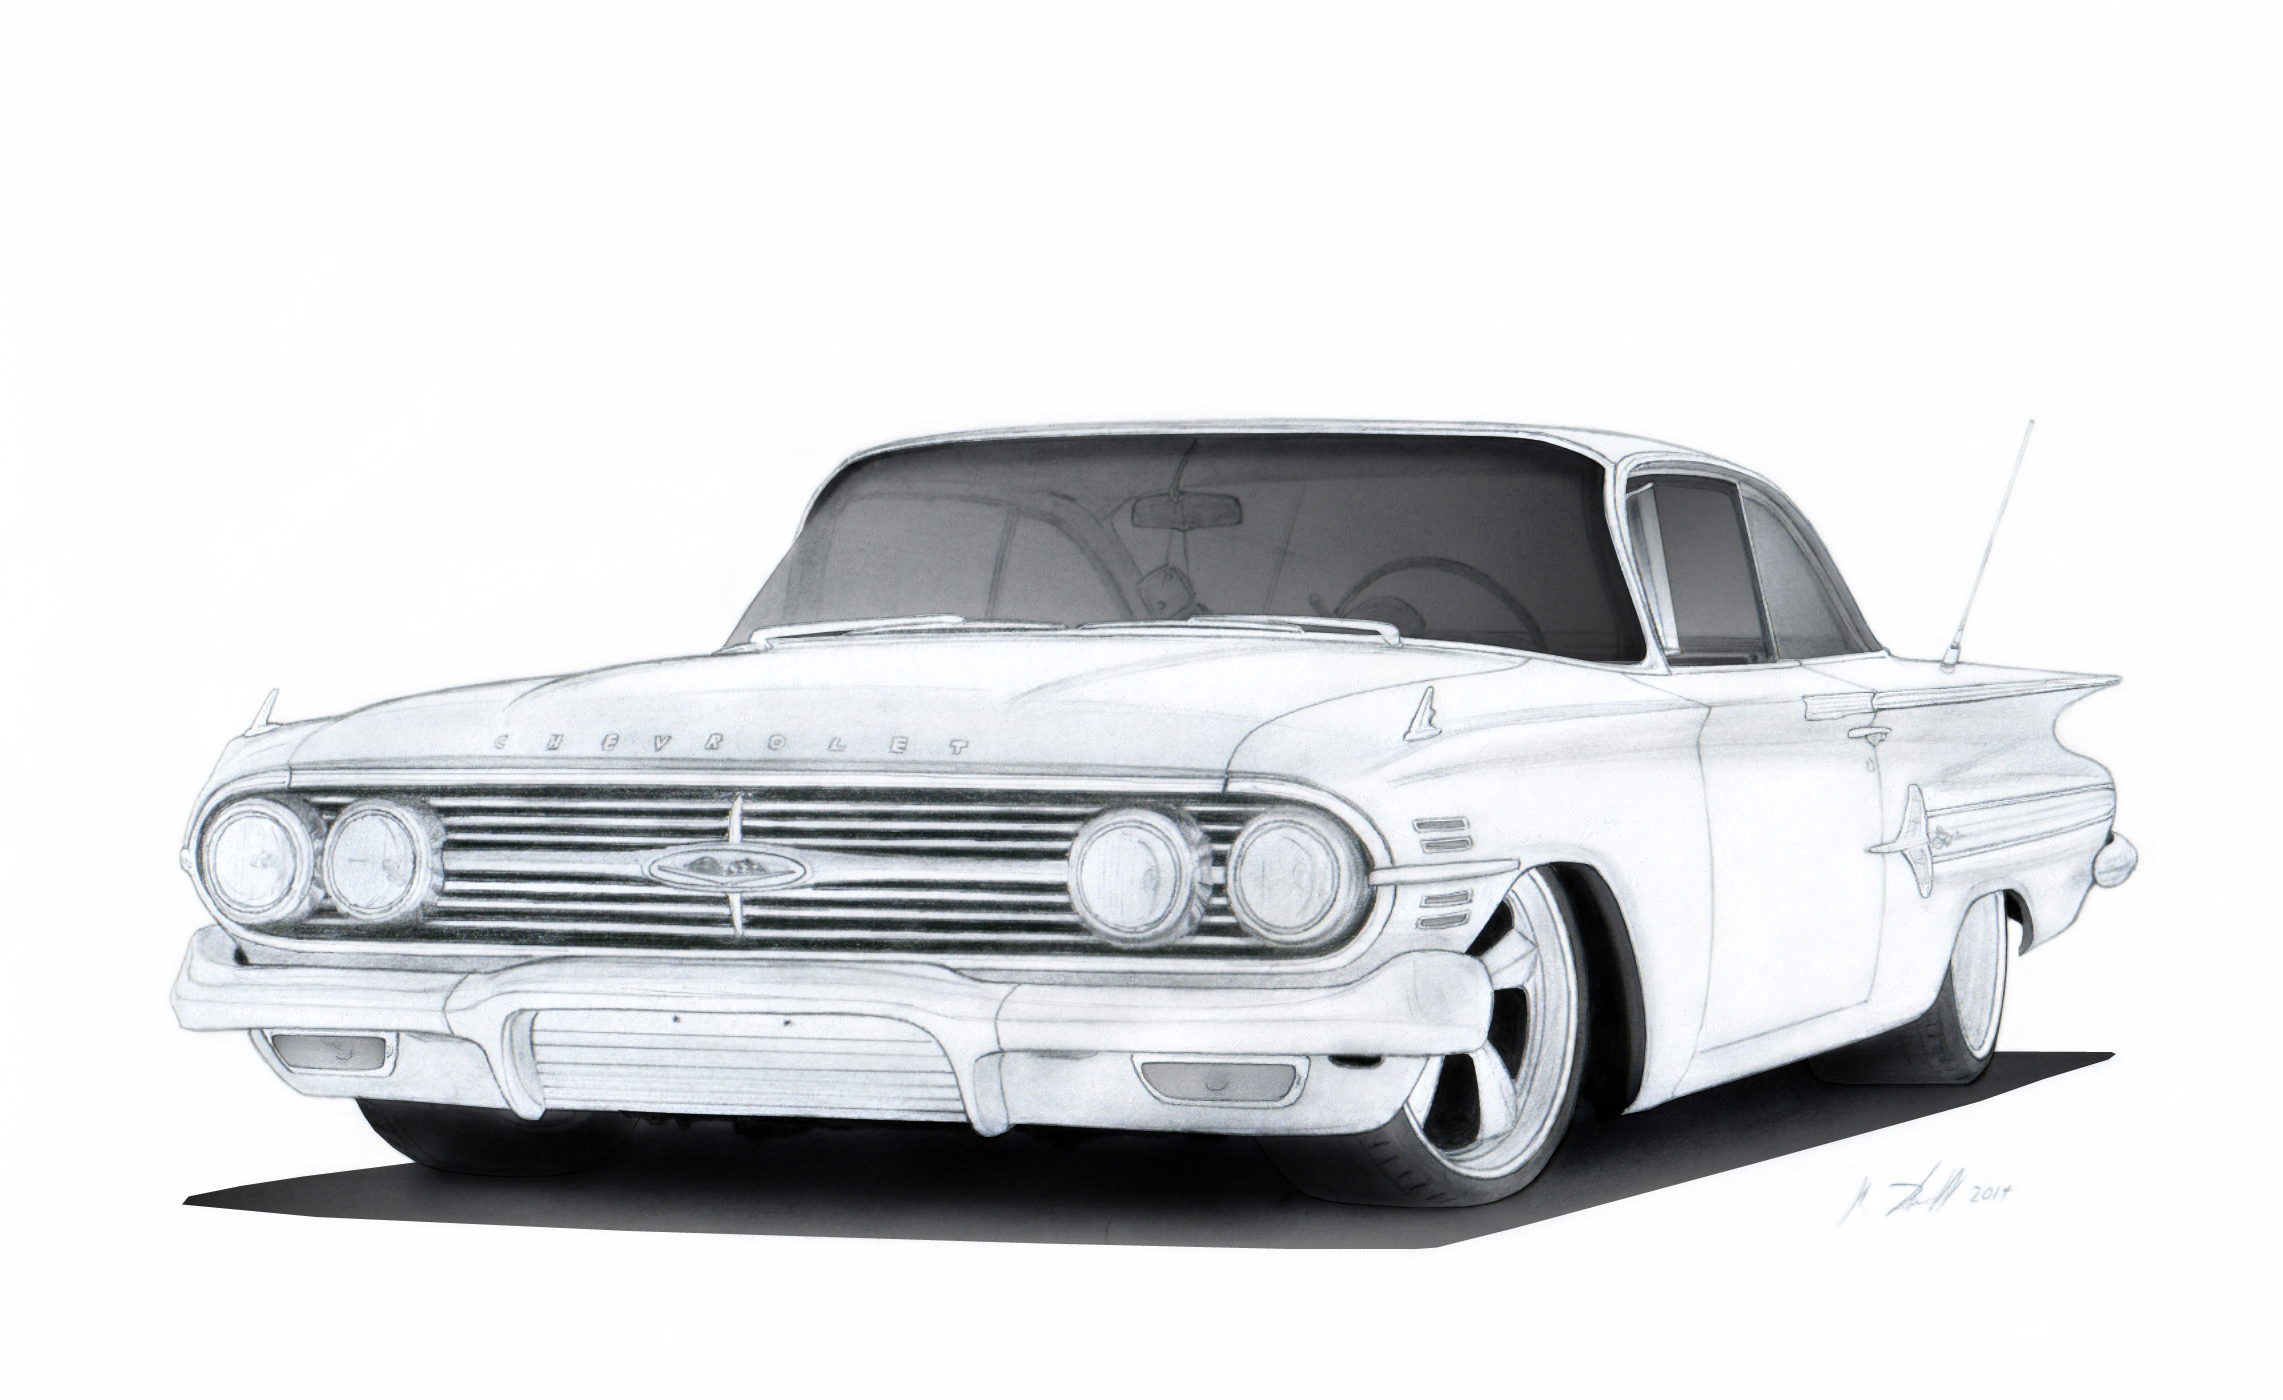 1960 Chevrolet Impala Pro Touring Drawing By Vertualissimo On Deviantart